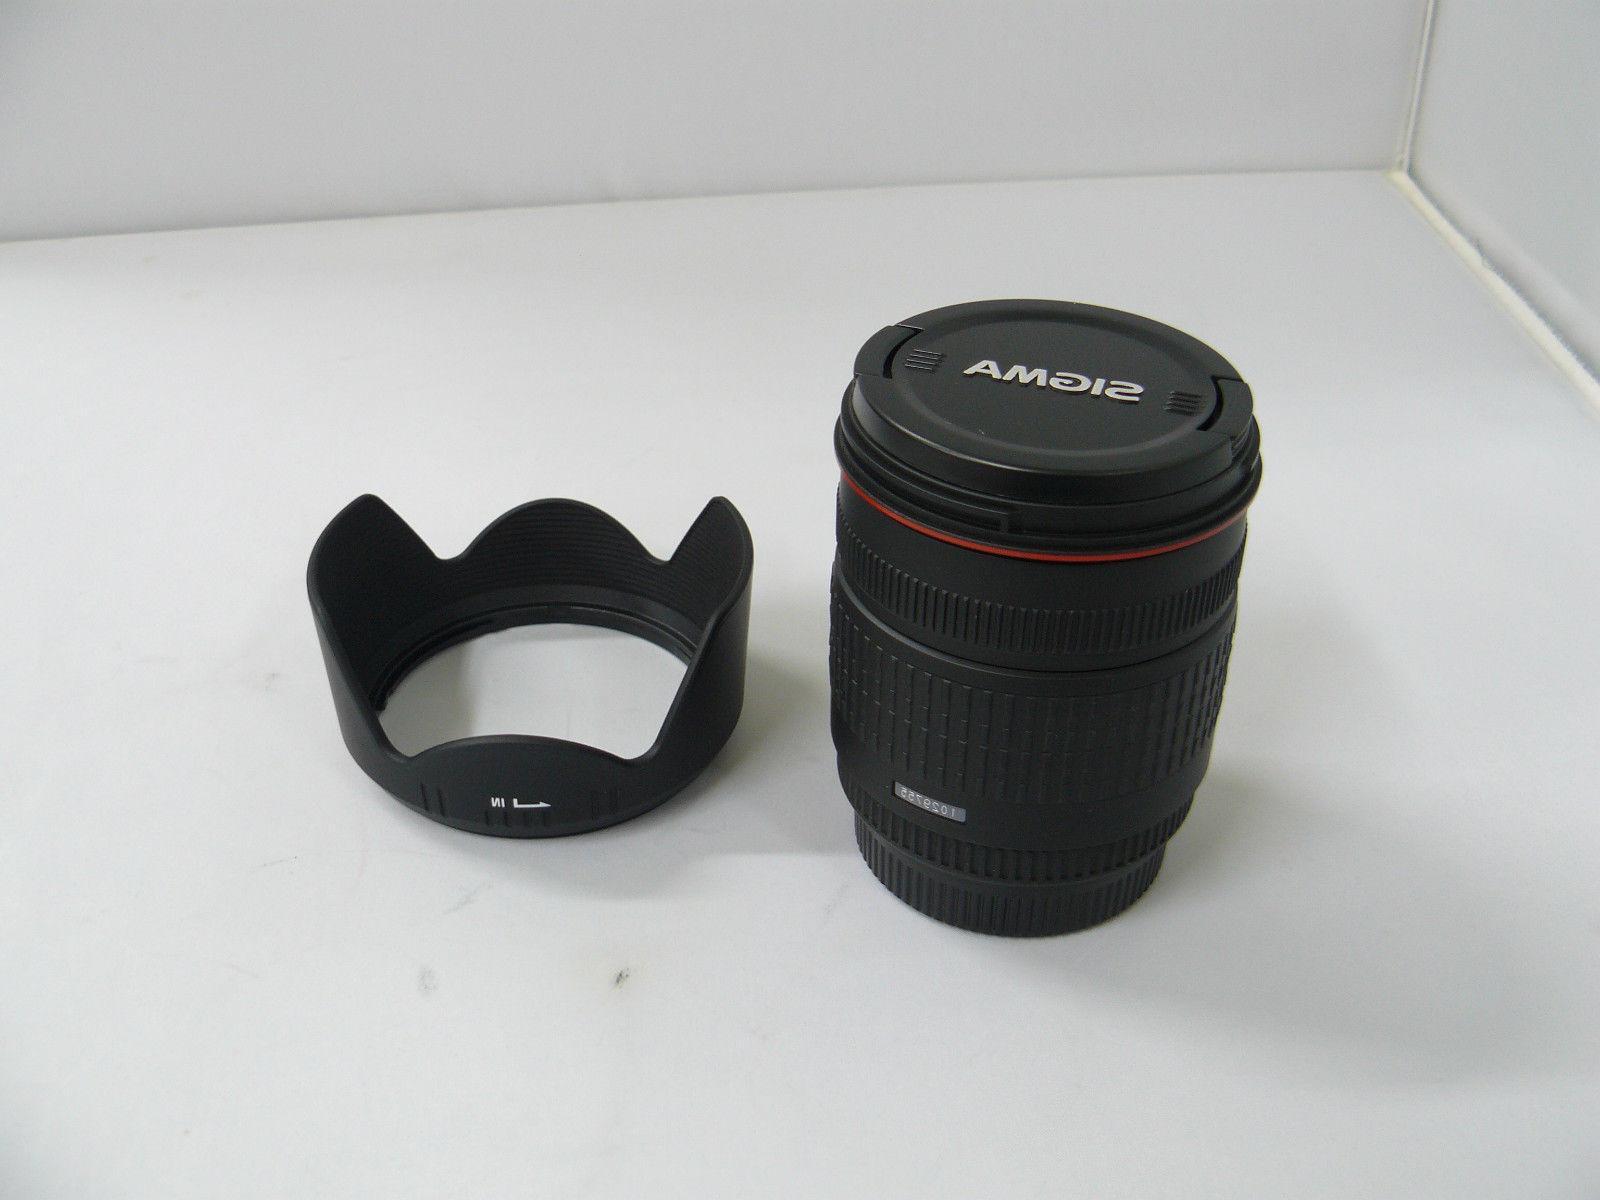 Sigma Compact Hyperzoom Lens Pentax